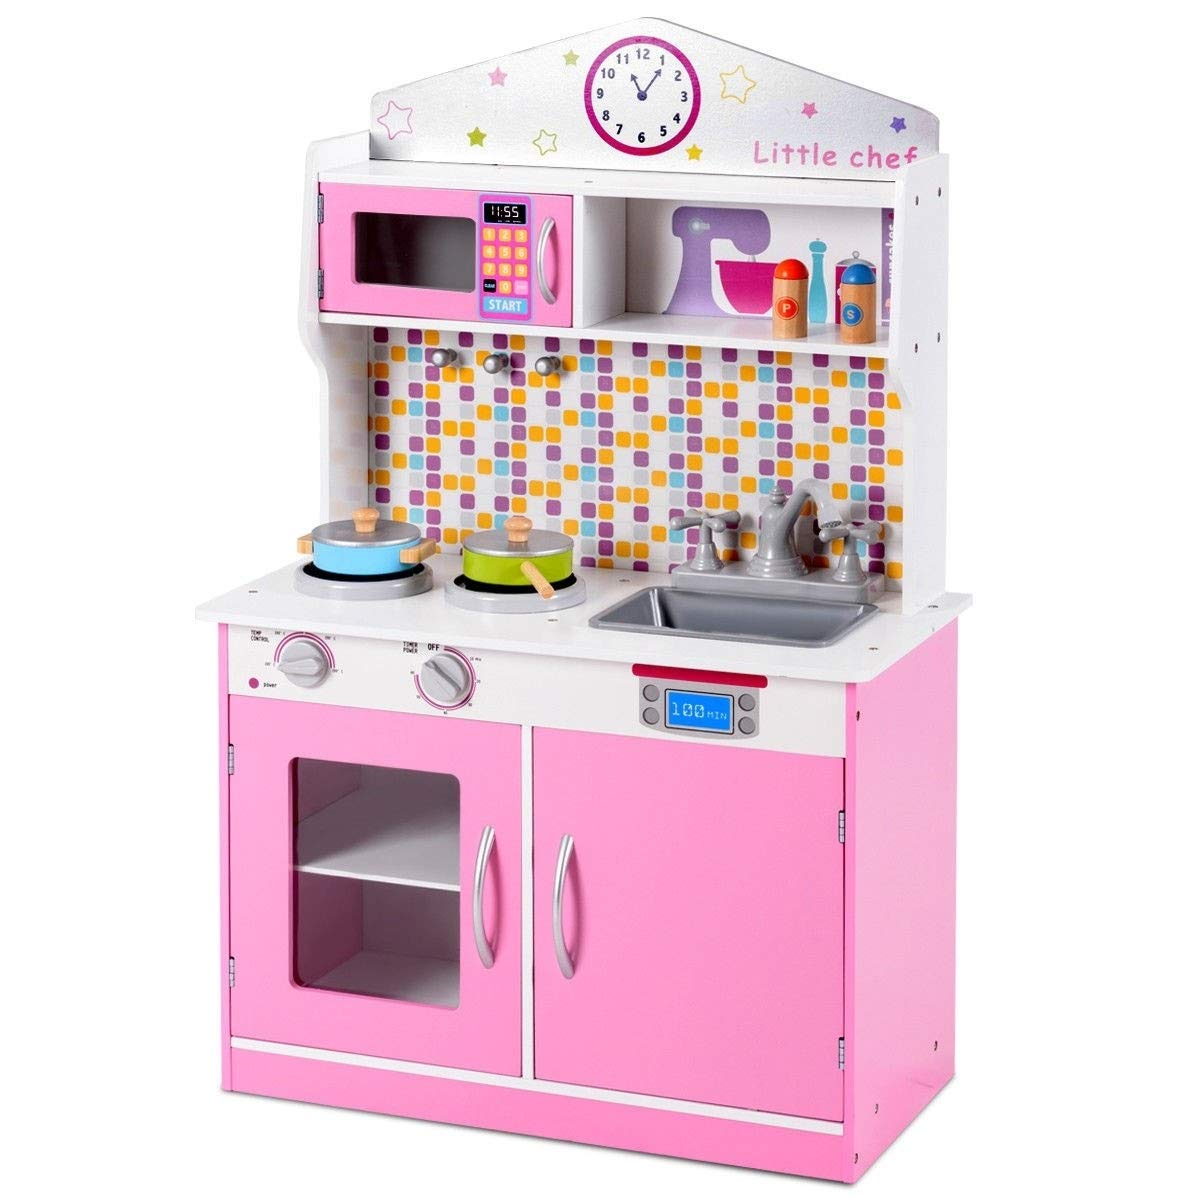 Amazon com bestchoiceforyou kids wooden pretend cooking play kitchen set pink color toys games